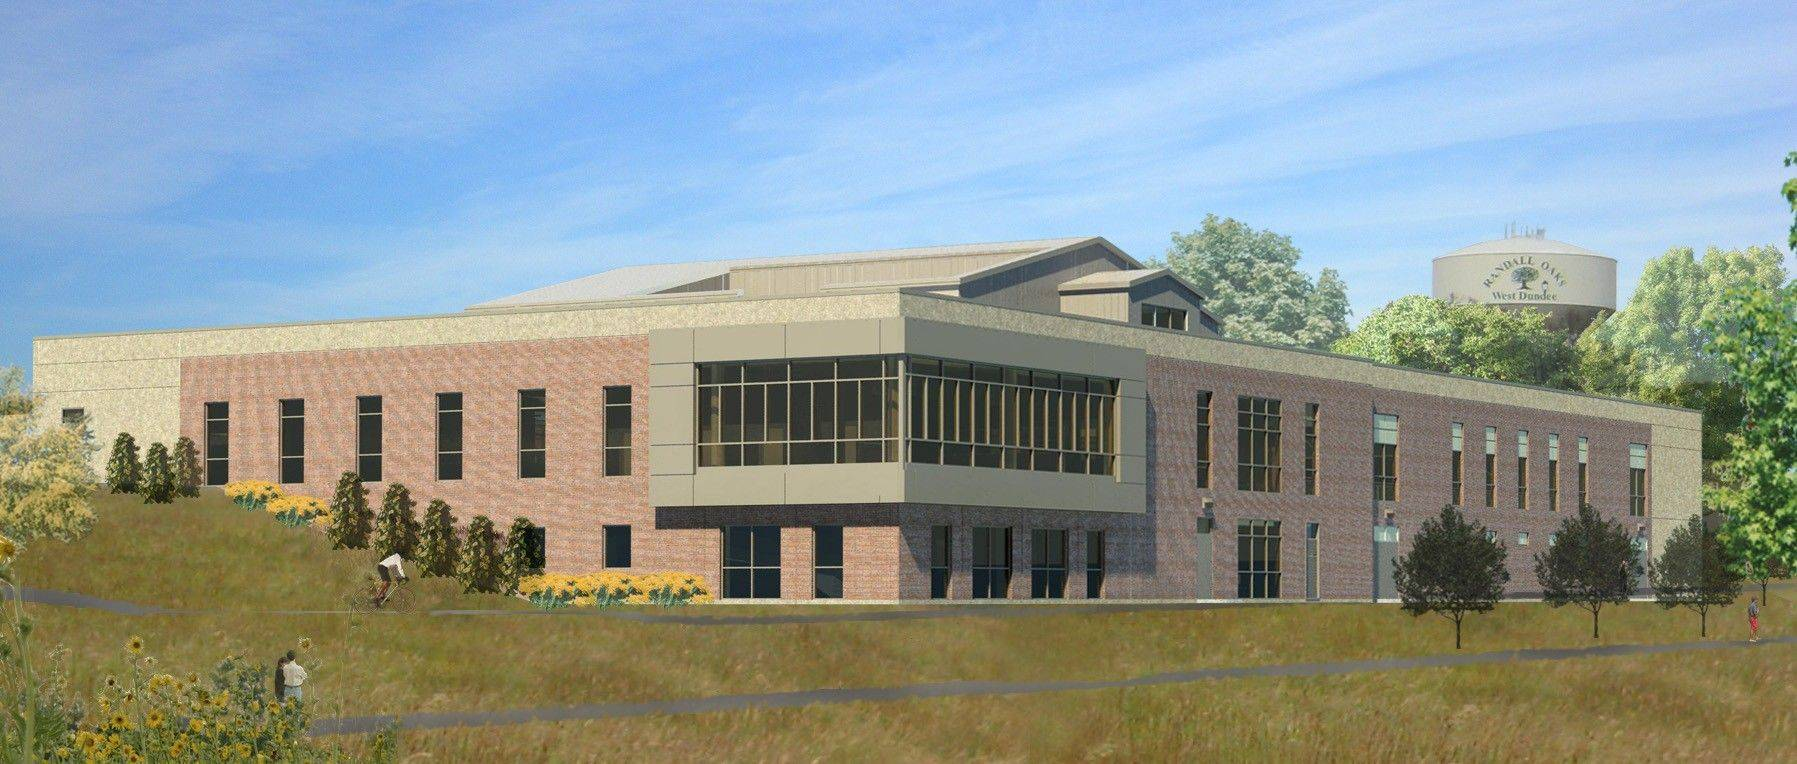 A rendering of the new Dundee Township Park District's $13.2 million recreation center that will be build on Randall Road, near Route 72. The district is in negotiations to lease a portion of the 47,000-square-foot building to the Dundee Township Library District.